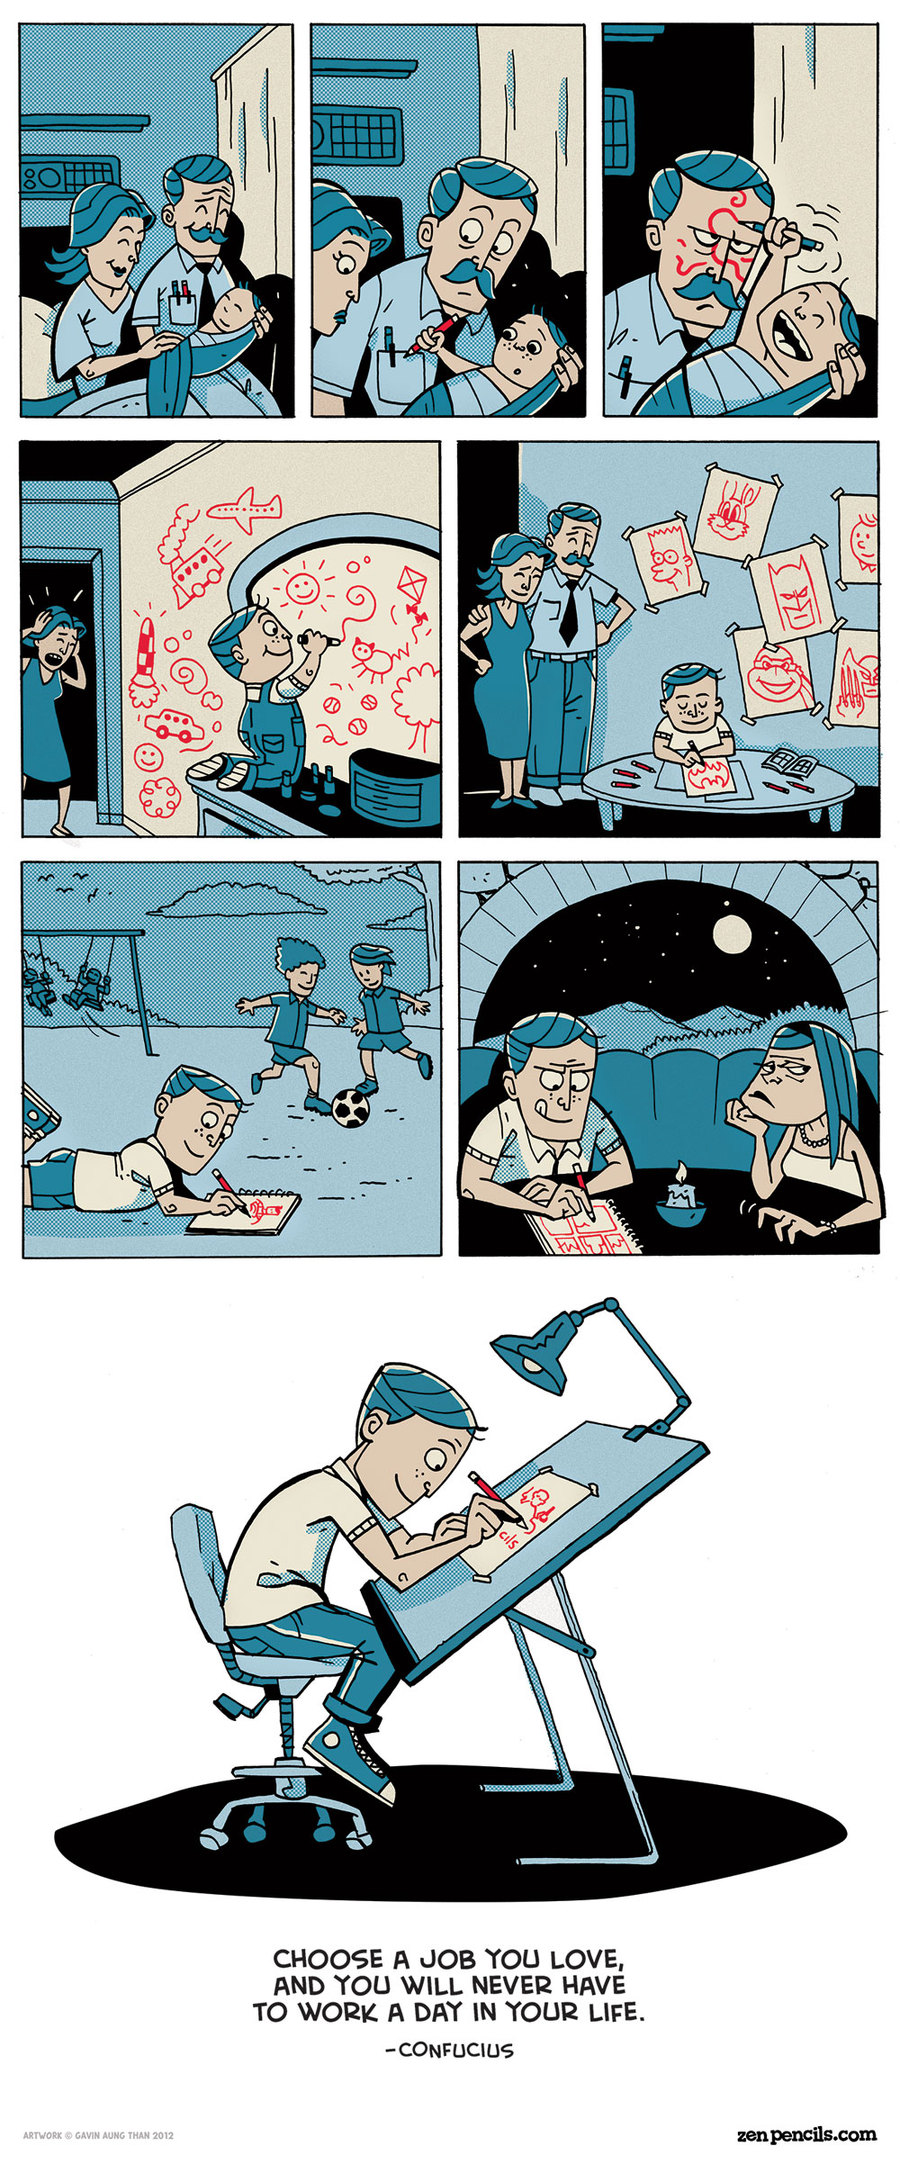 Zen Pencils for Jul 29, 2013 Comic Strip